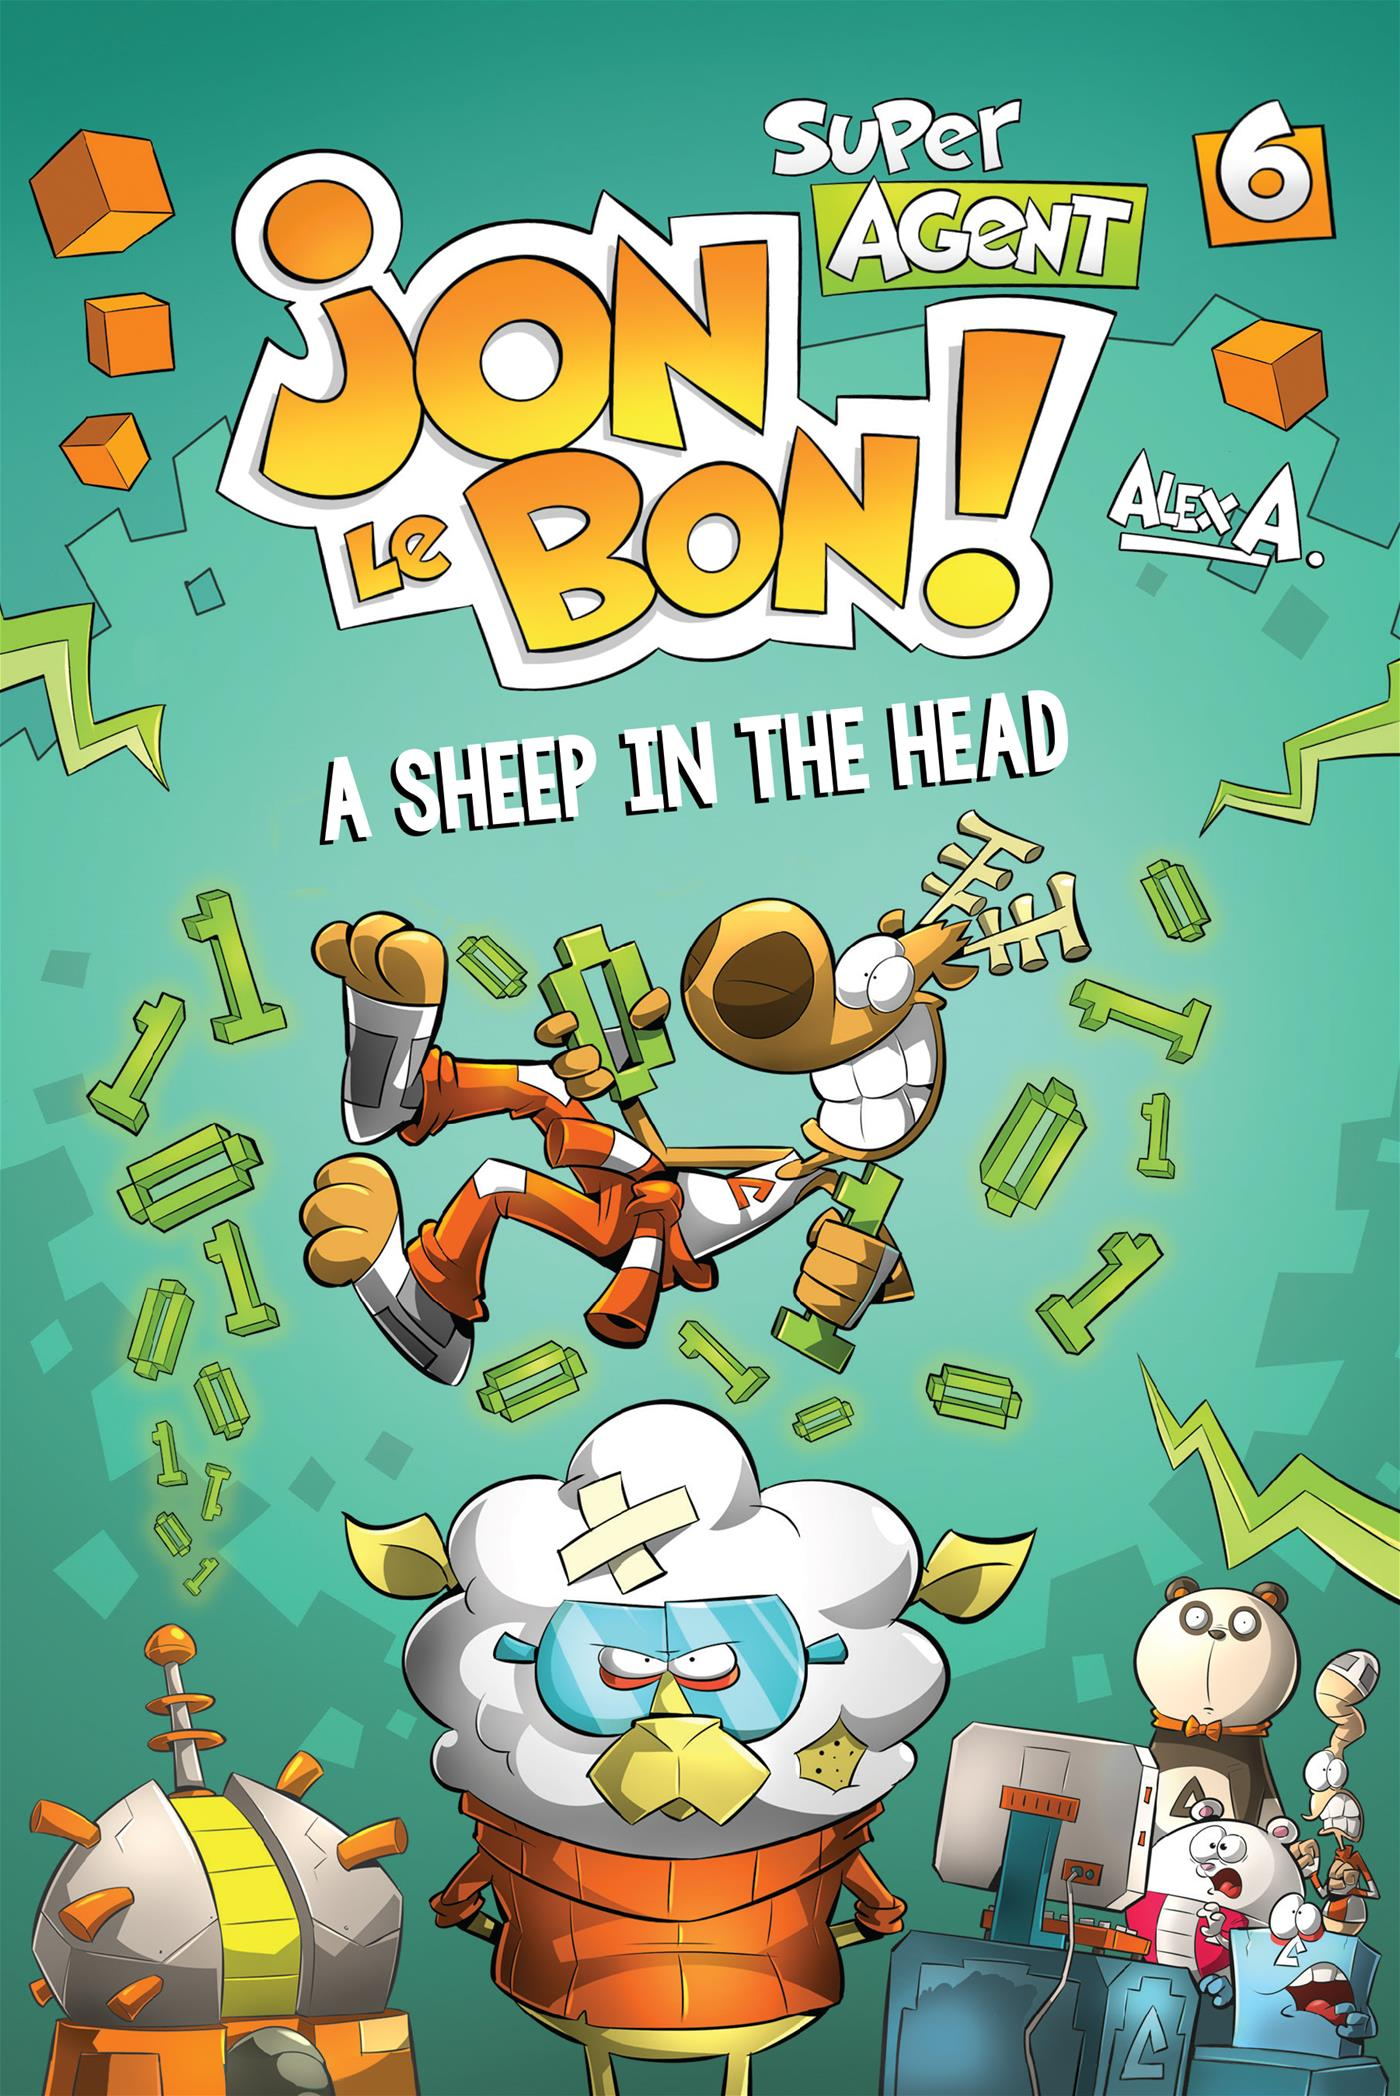 Livre Super Agent Jon Le Bon ! - Nº 6 - A sheep in the